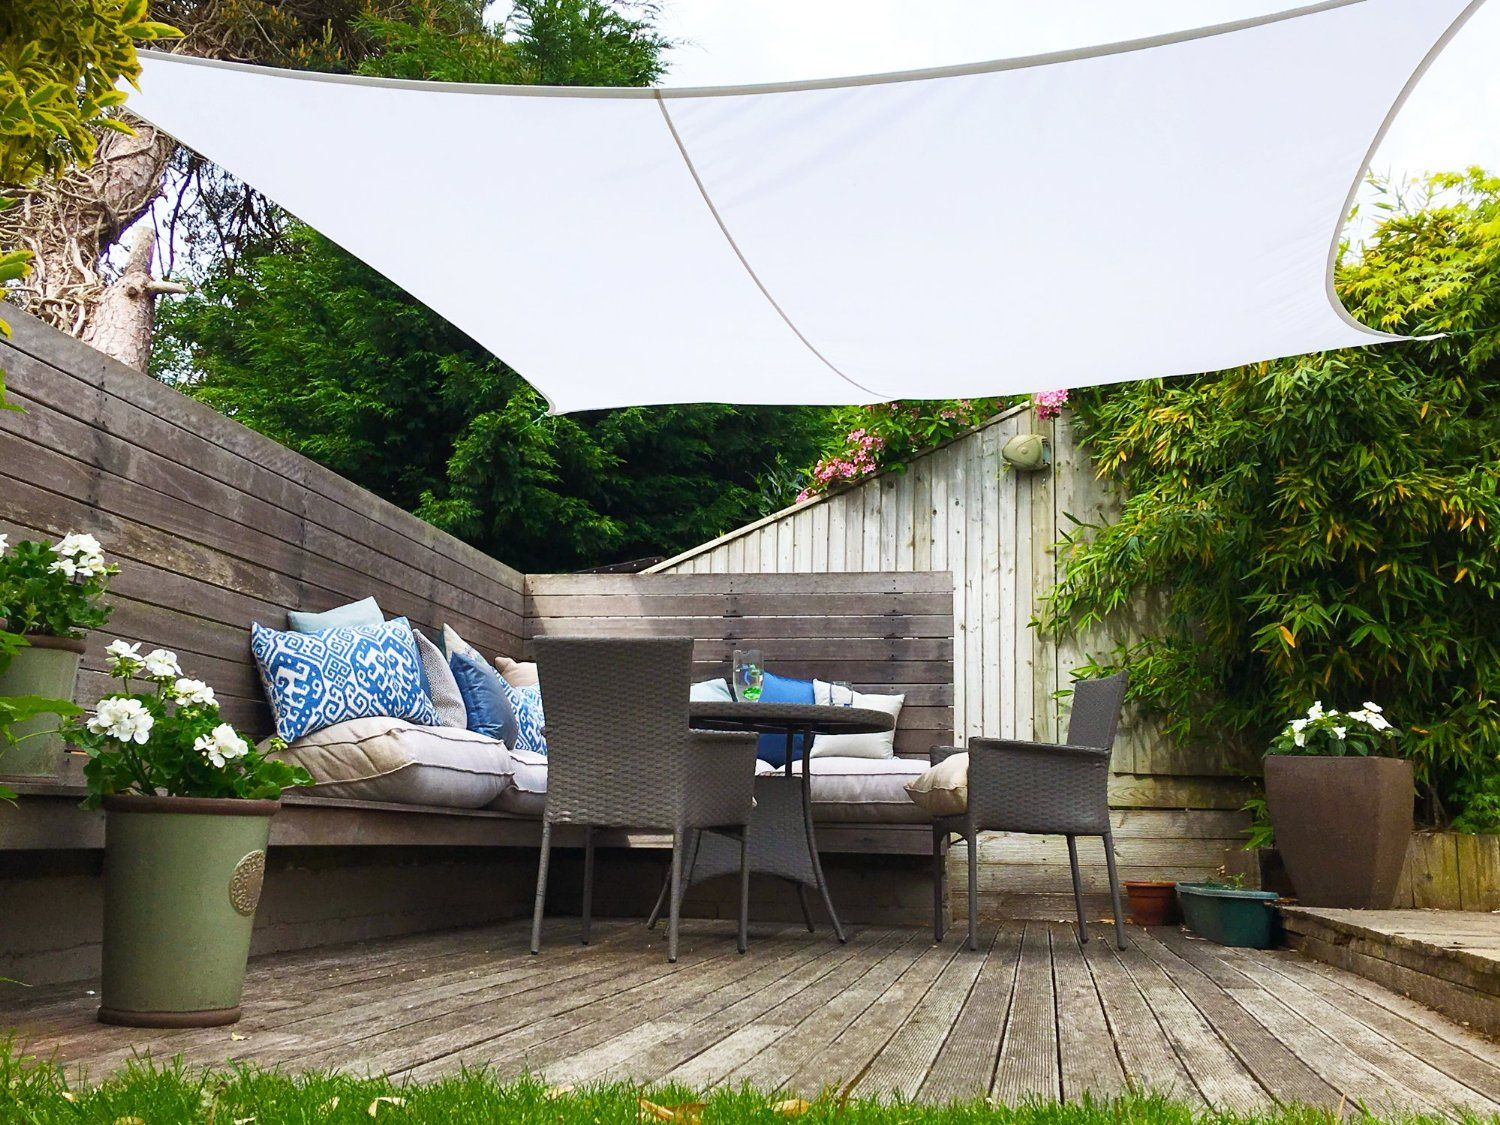 Clara Shade Sail Pure White Waterproof Sun 98% UV Premium 3.6m Square Garden Canopy & Clara Shade Sail Pure White Waterproof Sun 98% UV Premium 3.6m ...